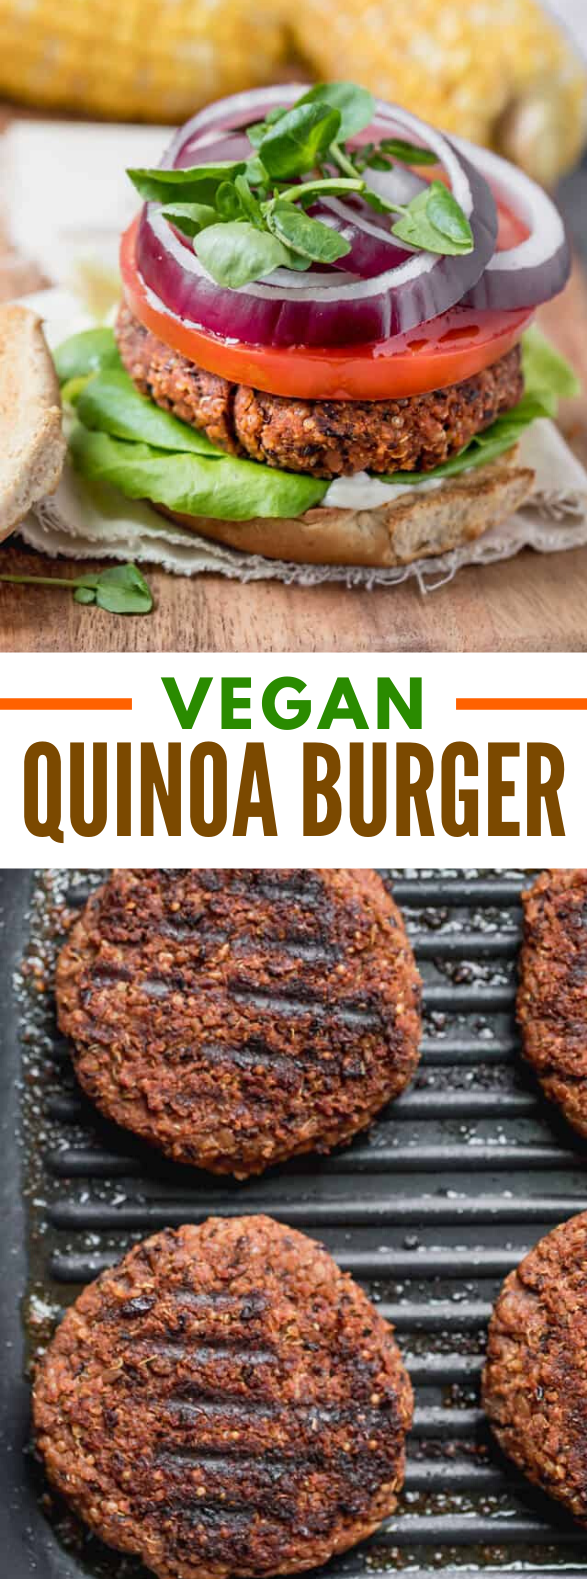 Quinoa Burger #vegan #sandwiches